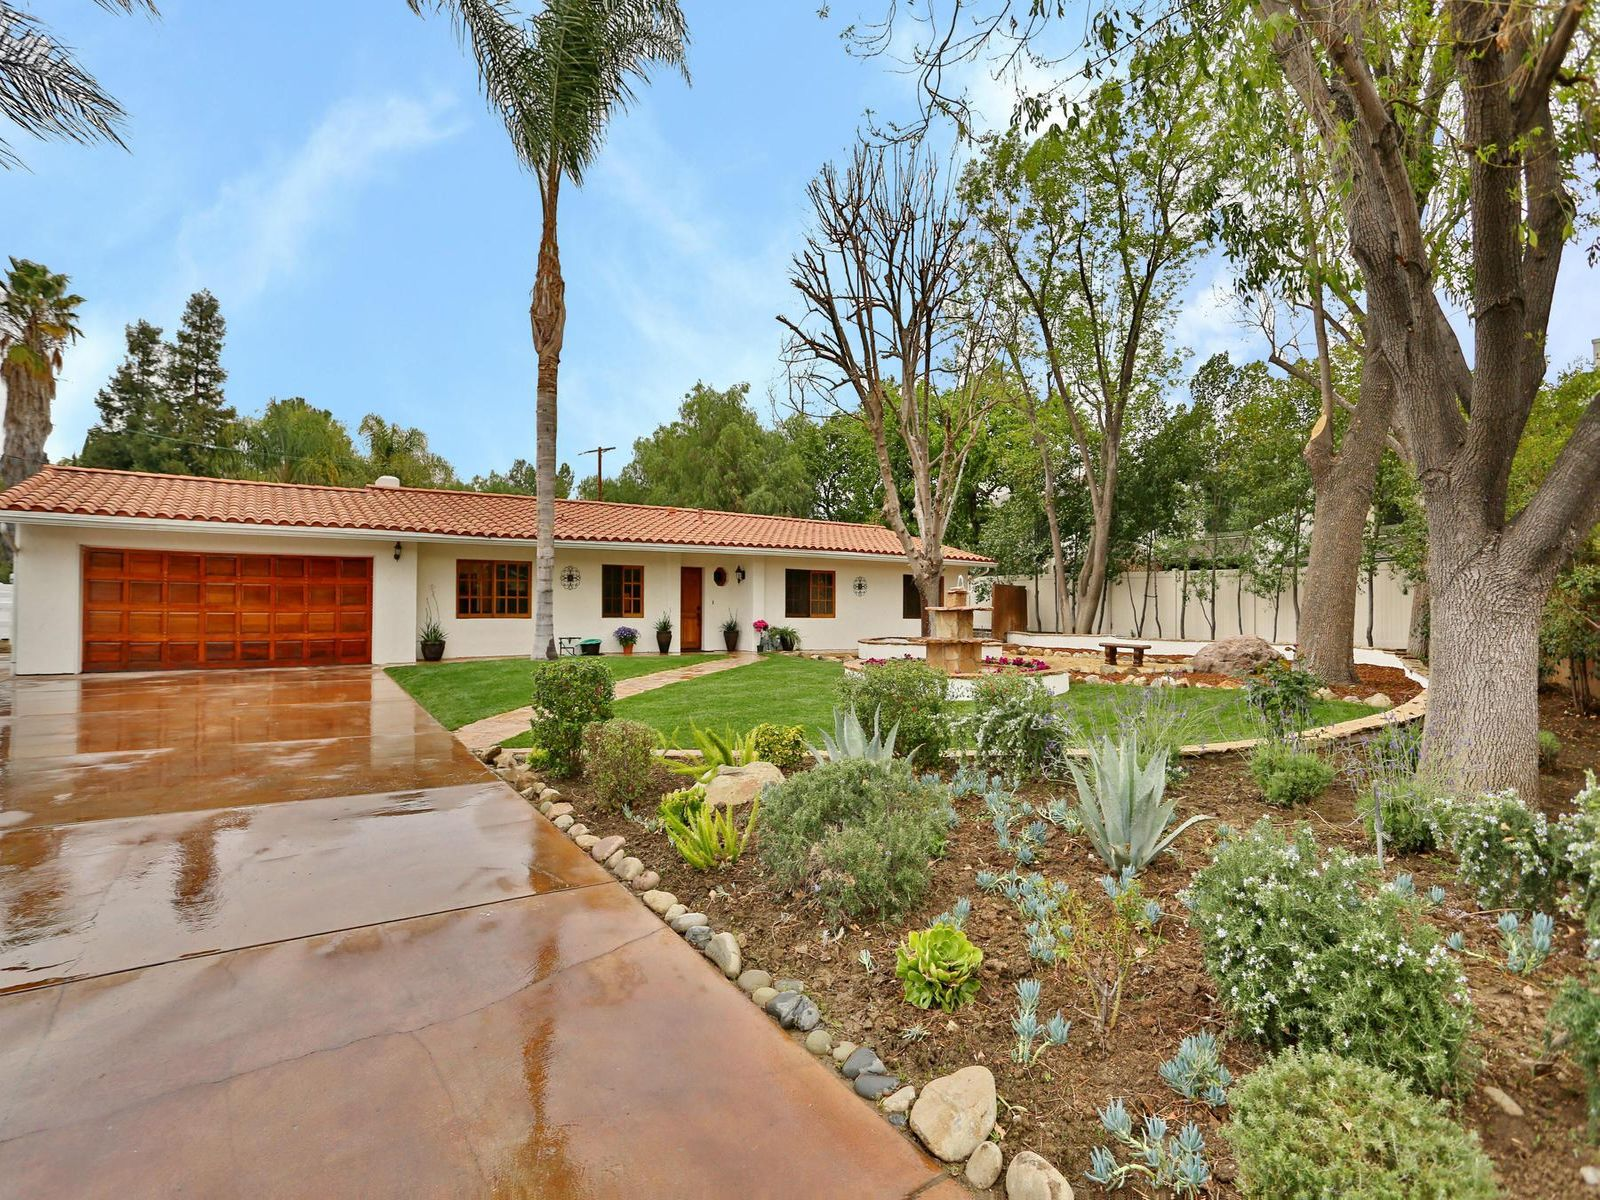 Spanish Ranch, Agoura Hills CA Single Family Home - Los Angeles Real Estate